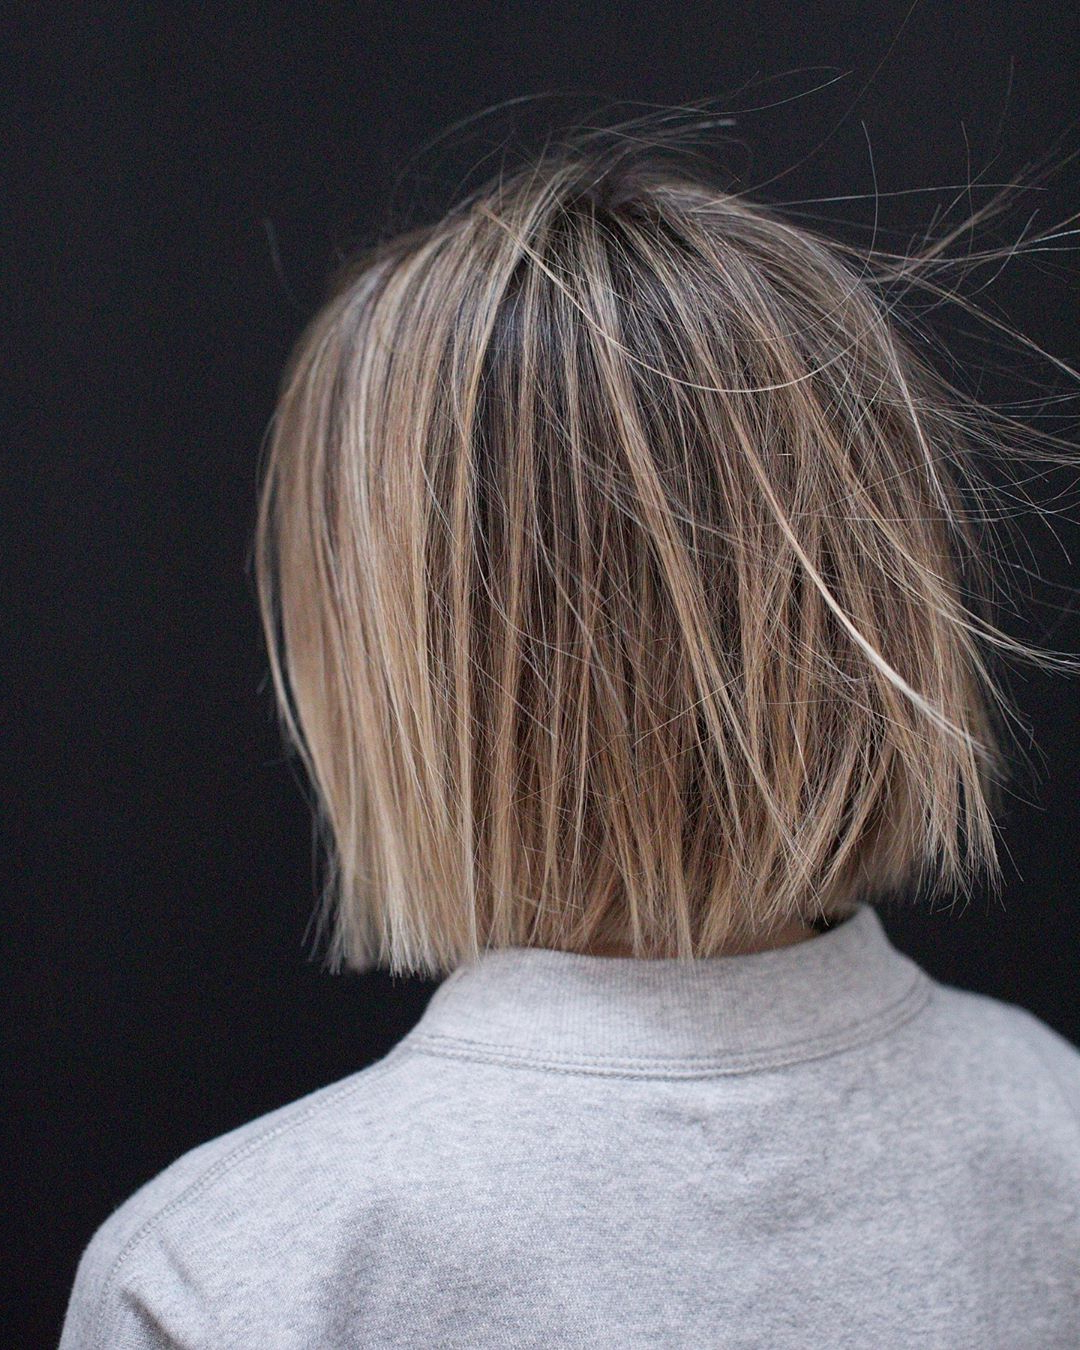 10 Casual Medium Bob Hair Cuts – Female Bob Hairstyles 2020 Intended For Feminine Wavy Golden Blonde Bob Hairstyles (View 1 of 20)